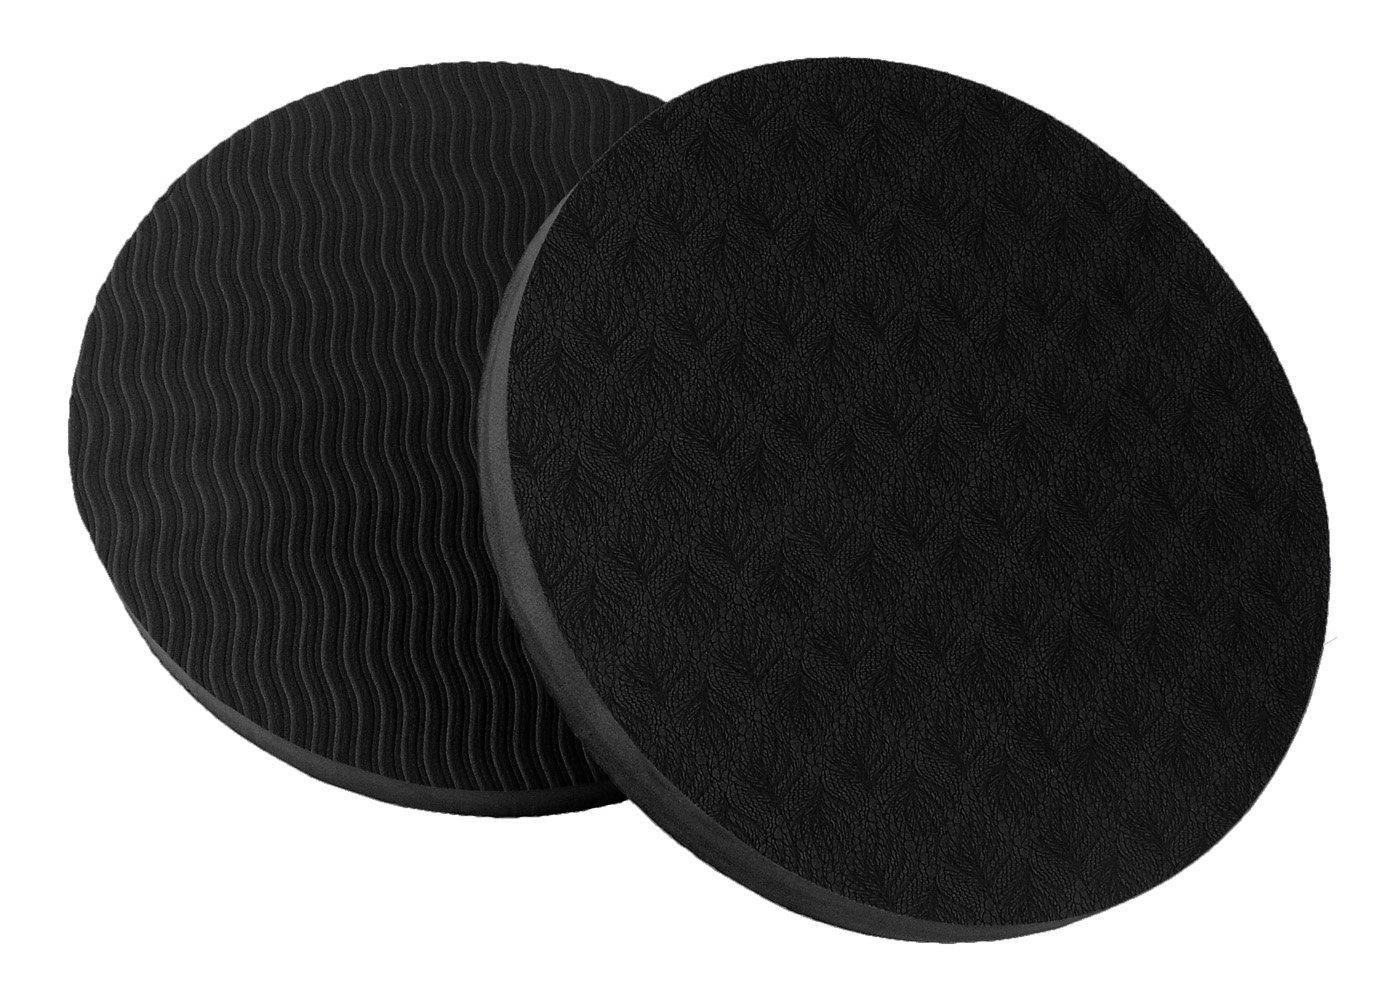 GoYonder Eco Yoga Workout Knee Pad Cushion Pack of 2